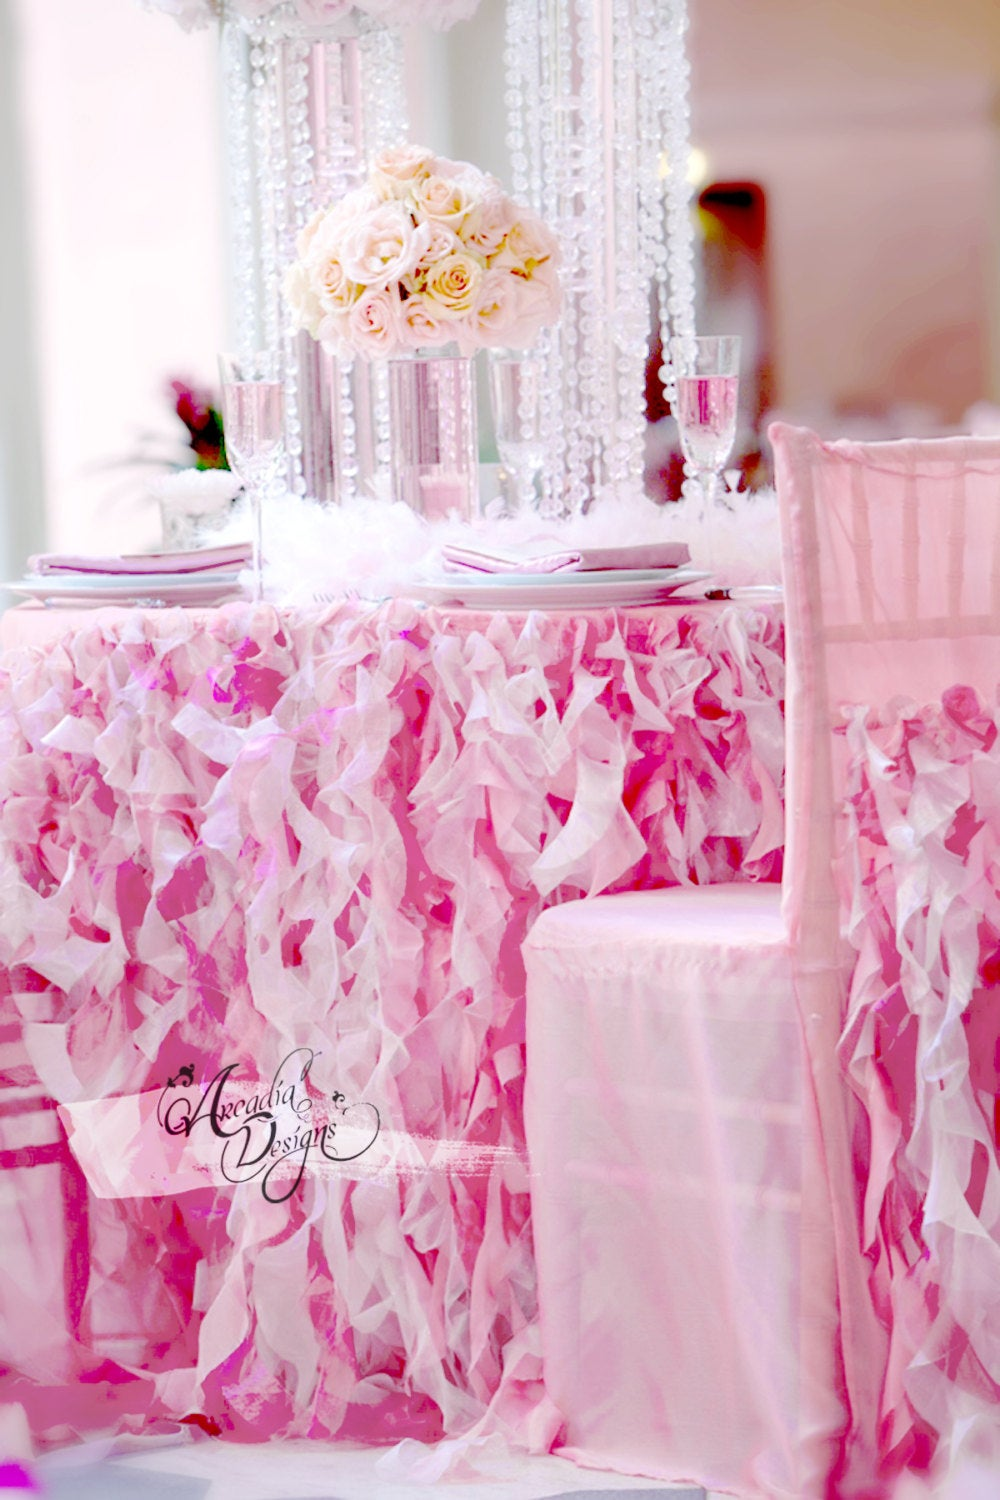 Pink Ruffle Tablecloth & Curly Willow Table Skirt Made To Order For Wedding Reception Tables Sweetheart Cake Head Bridal Shower